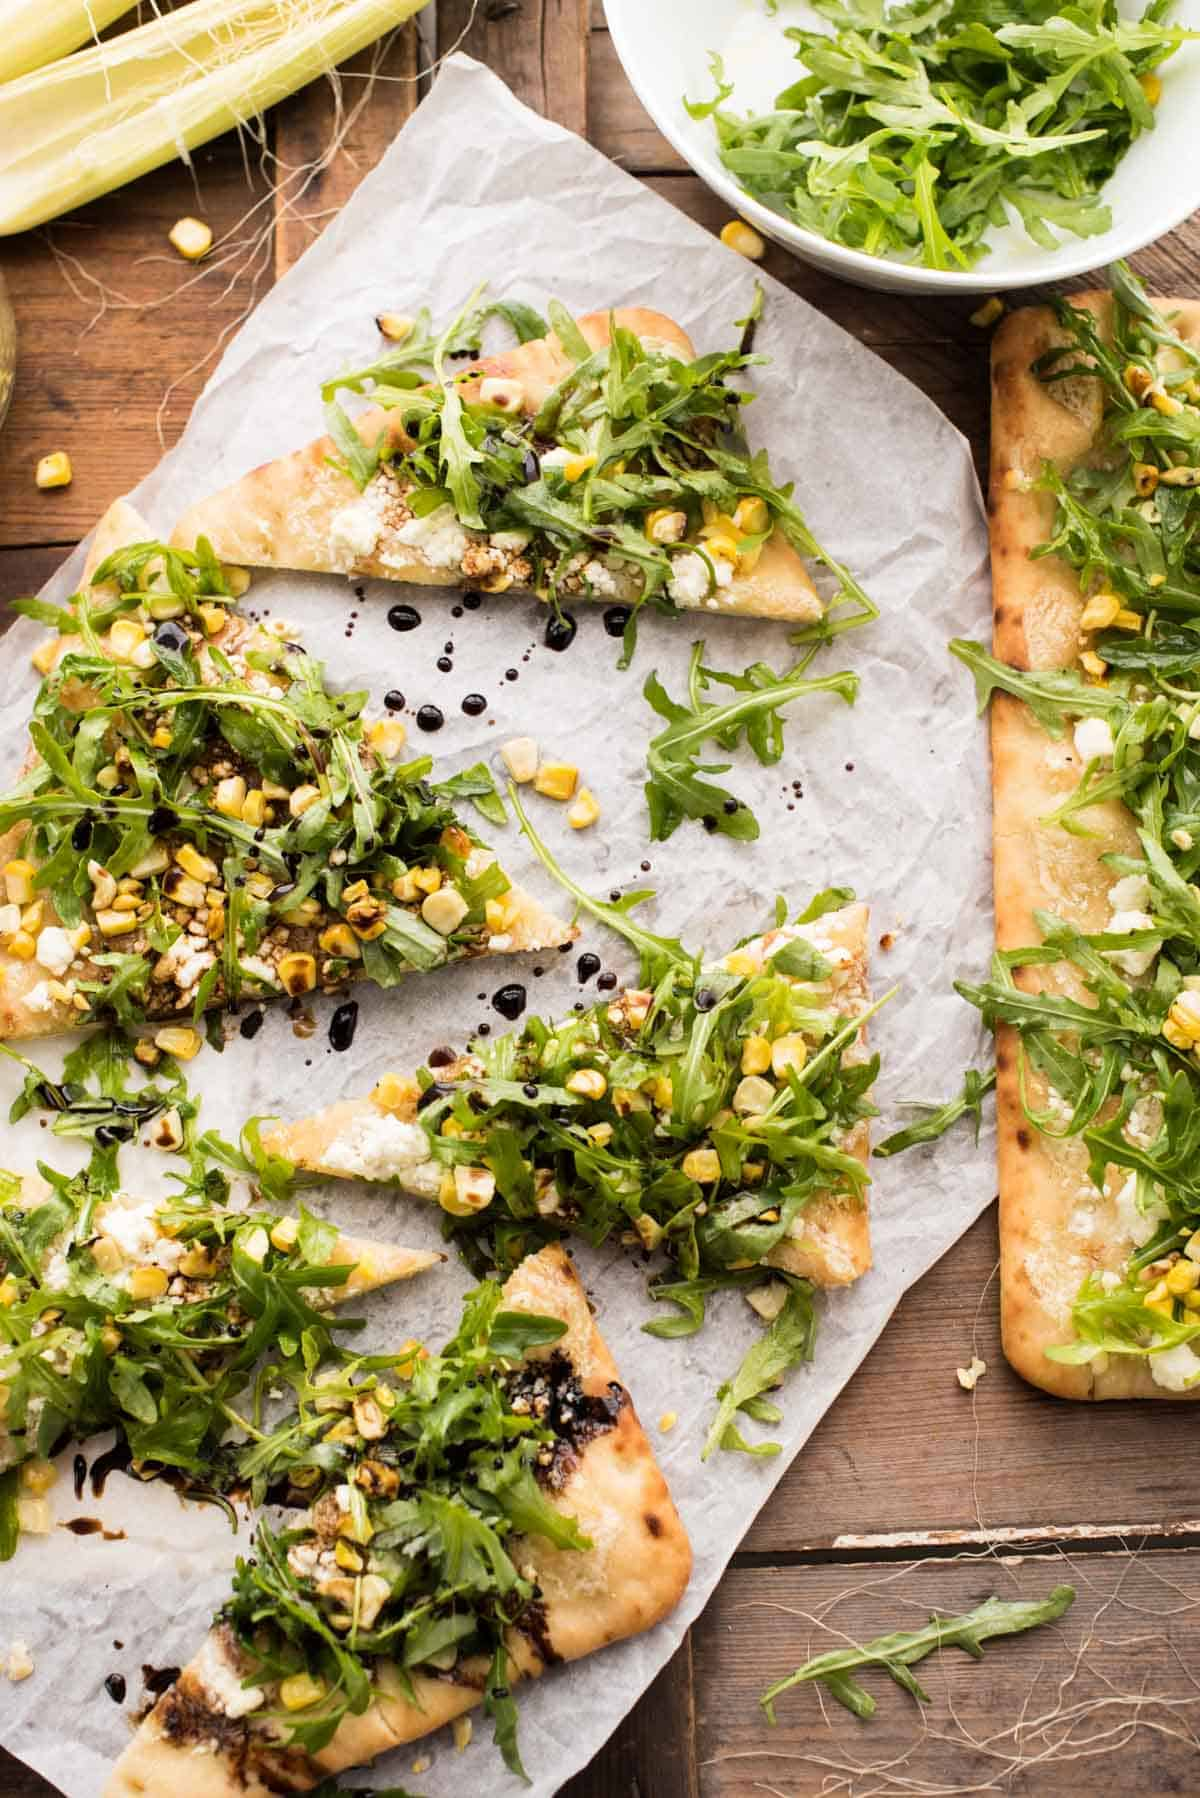 Simple Summer Flatbread with Grilled Corn, Arugula, Mascarpone + Goat Cheese. Just the right amount of crunch, creamy, sweet and savory - made in a flash!